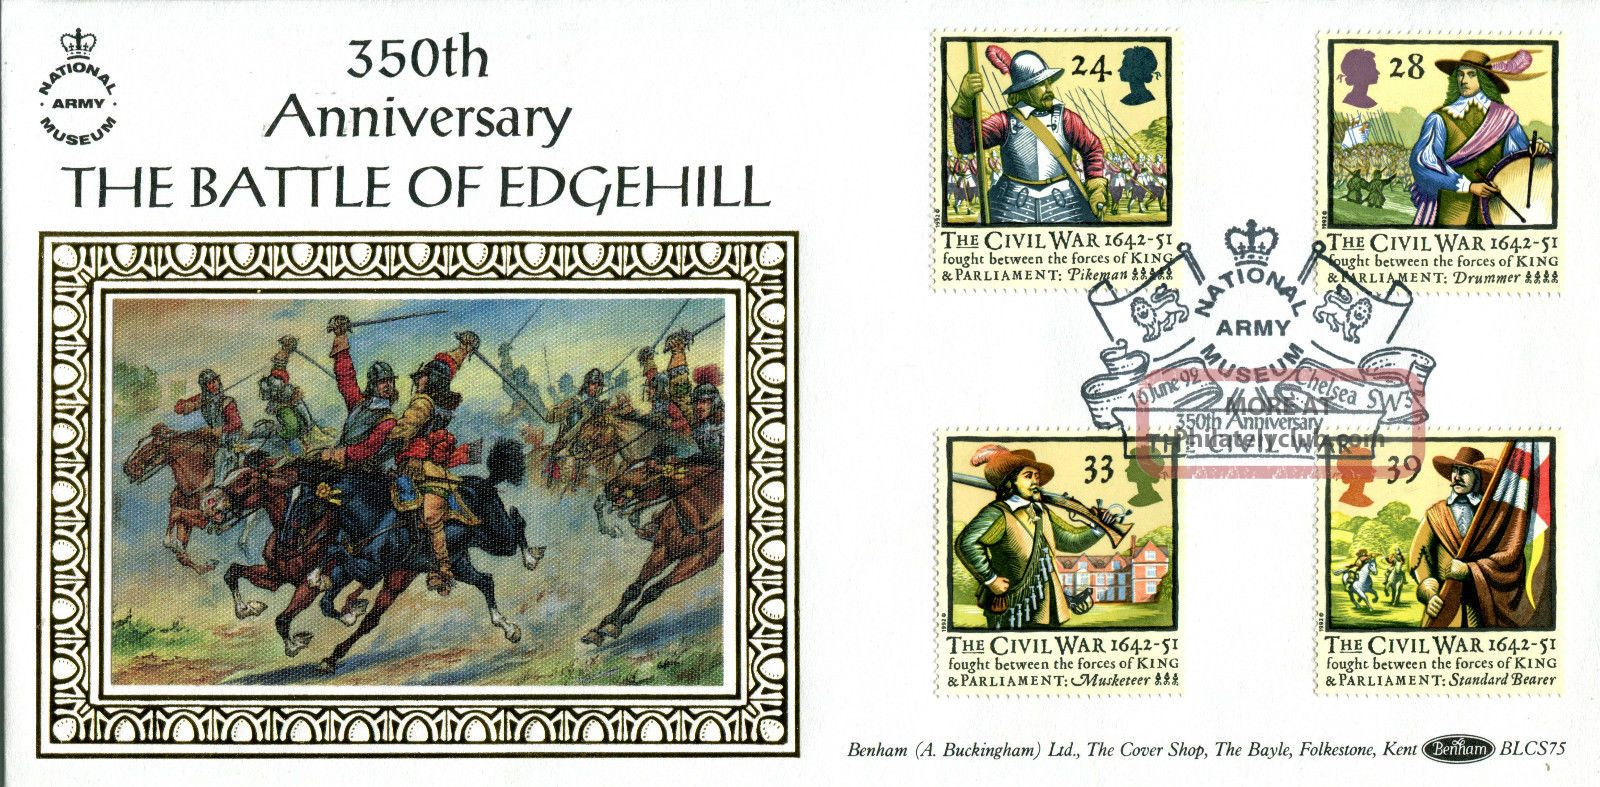 16 June 1992 Civil War Benham Blcs 75 First Day Cover Army Museum Chelsea Shs Topical Stamps photo